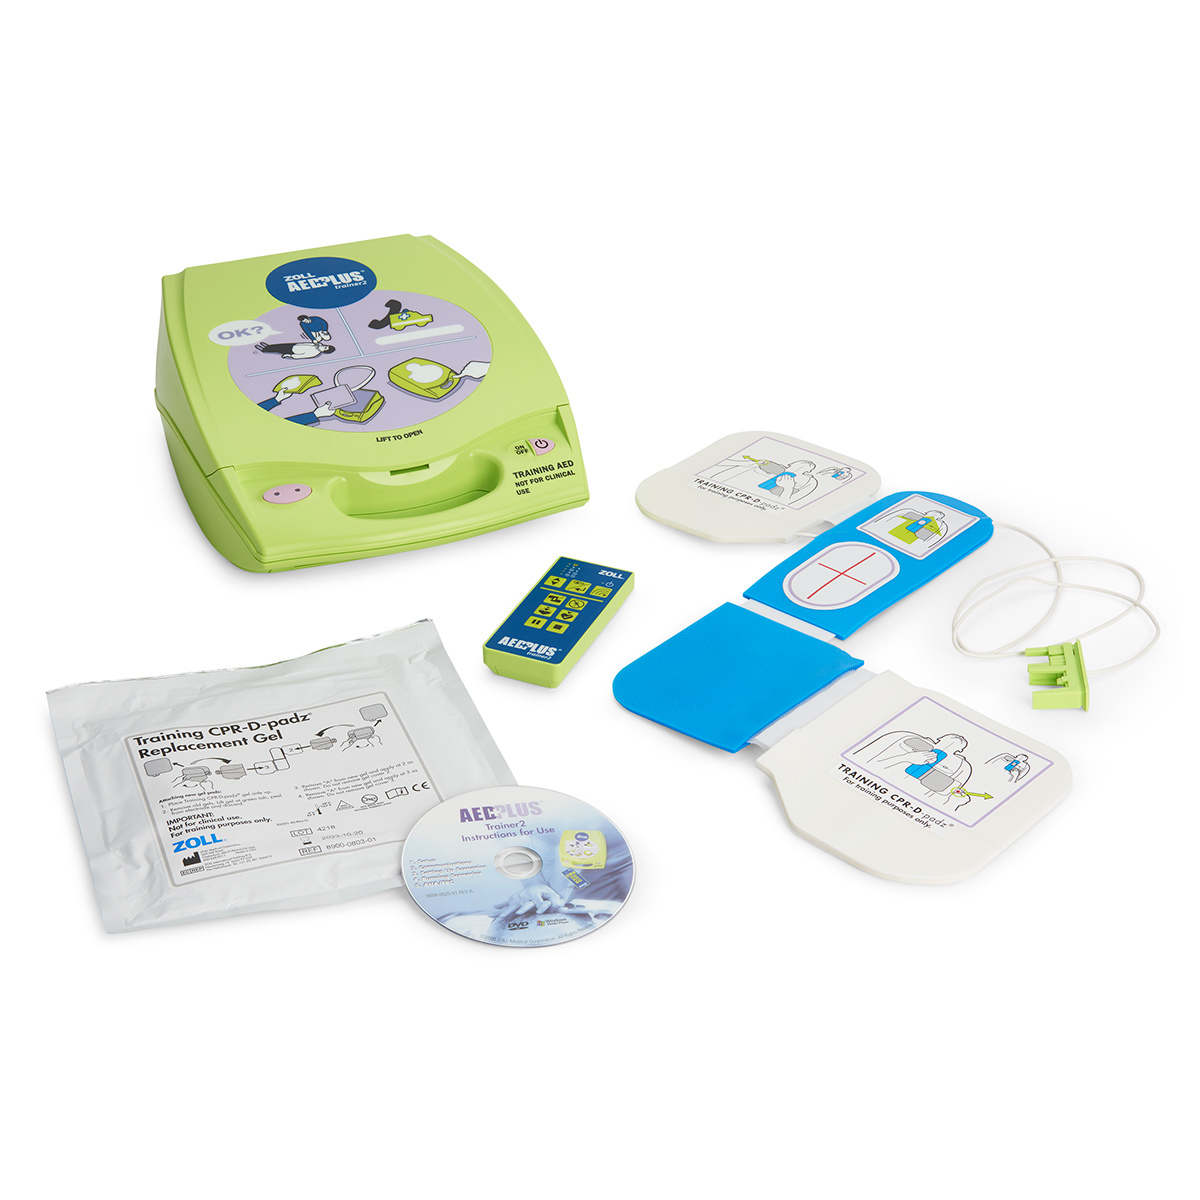 ZOLL AED Plus Trainer2 Unit | 8008-0050-01 made by ZOLL | CPR Savers and  First Aid Supply